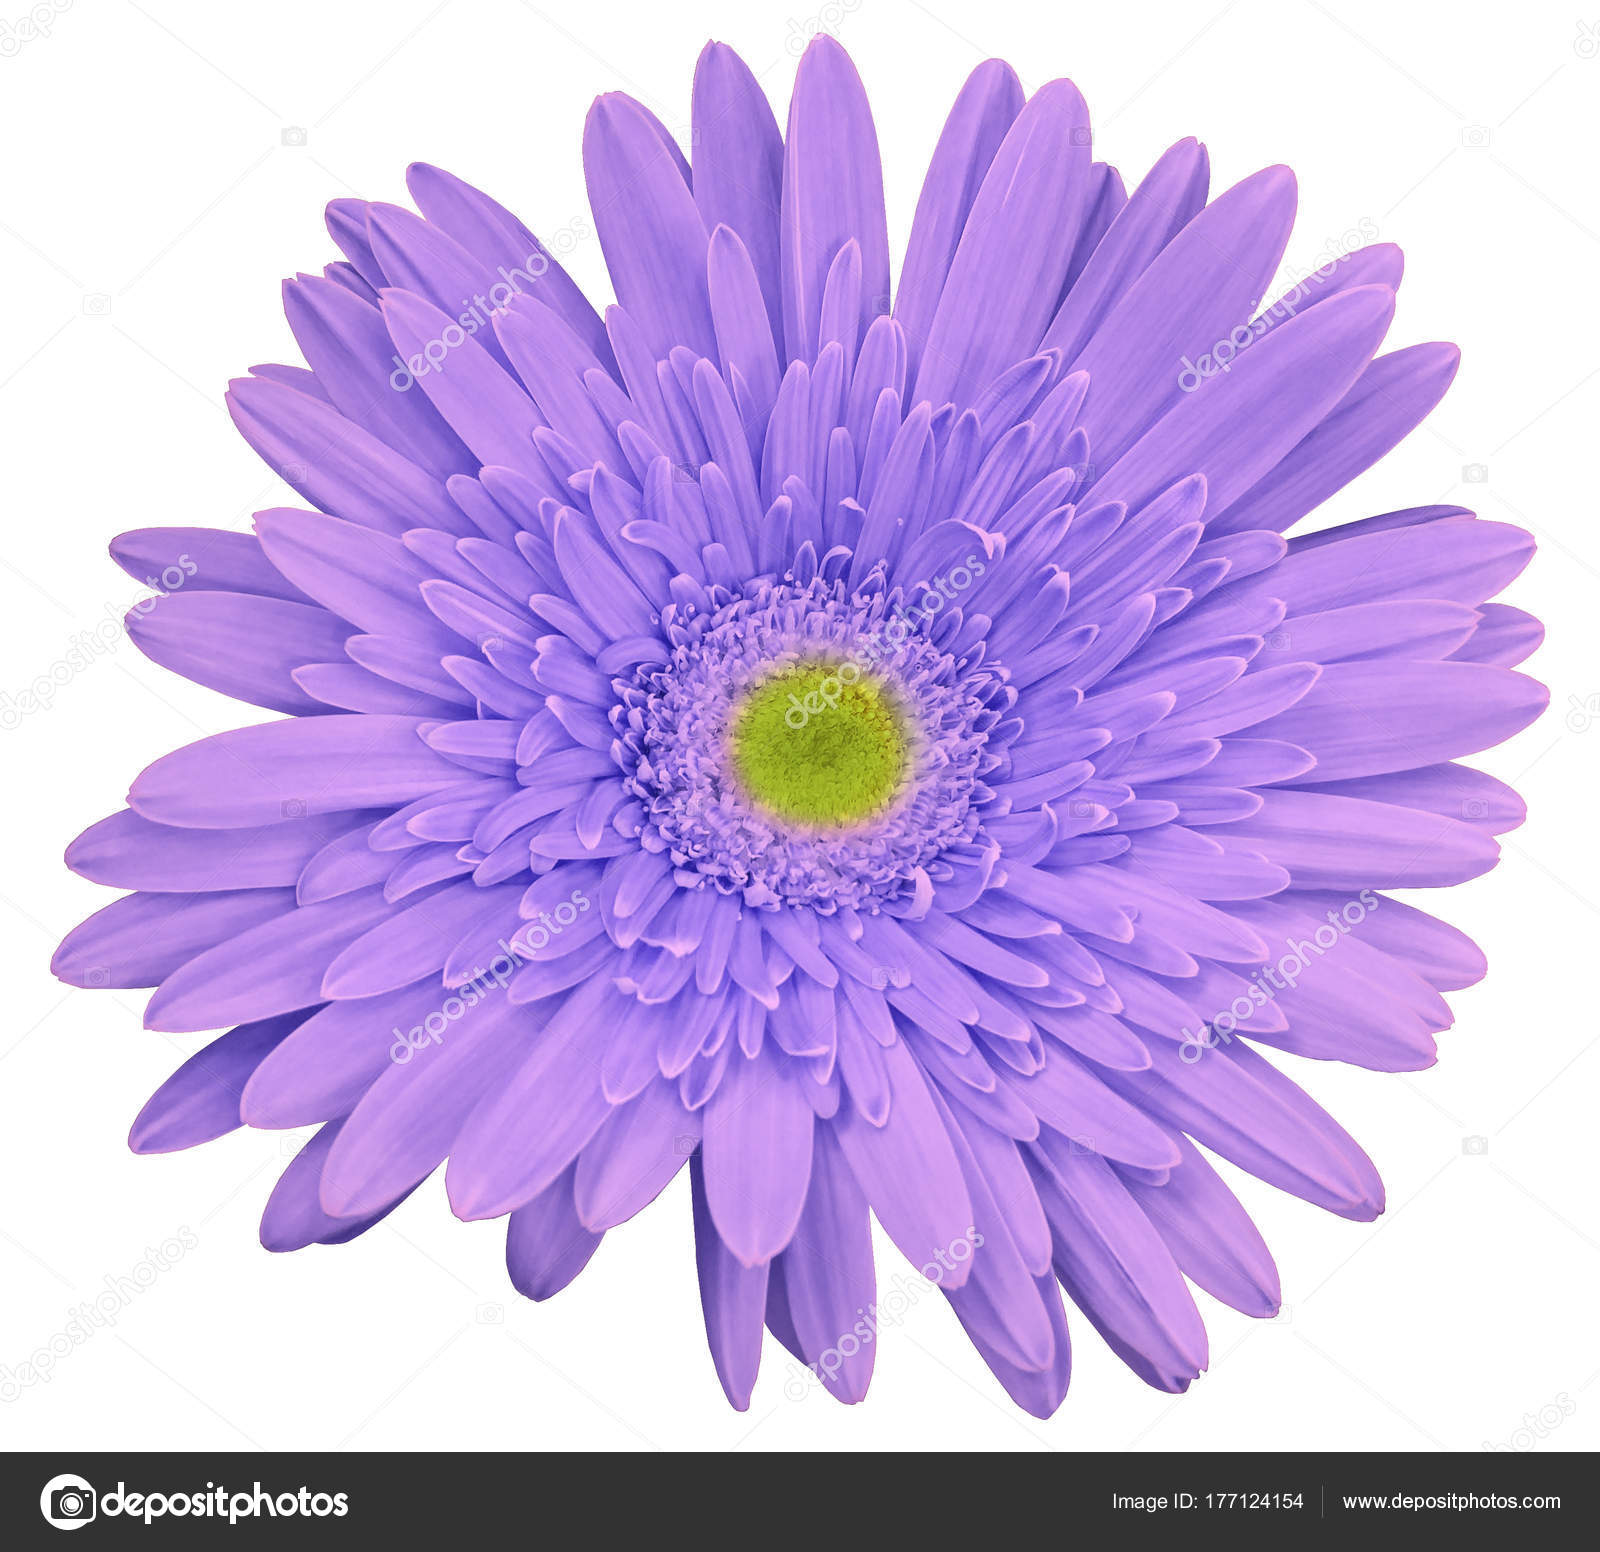 Light violet gerbera flower white isolated background clipping path light violet gerbera flower white isolated background clipping path closeup stock photo mightylinksfo